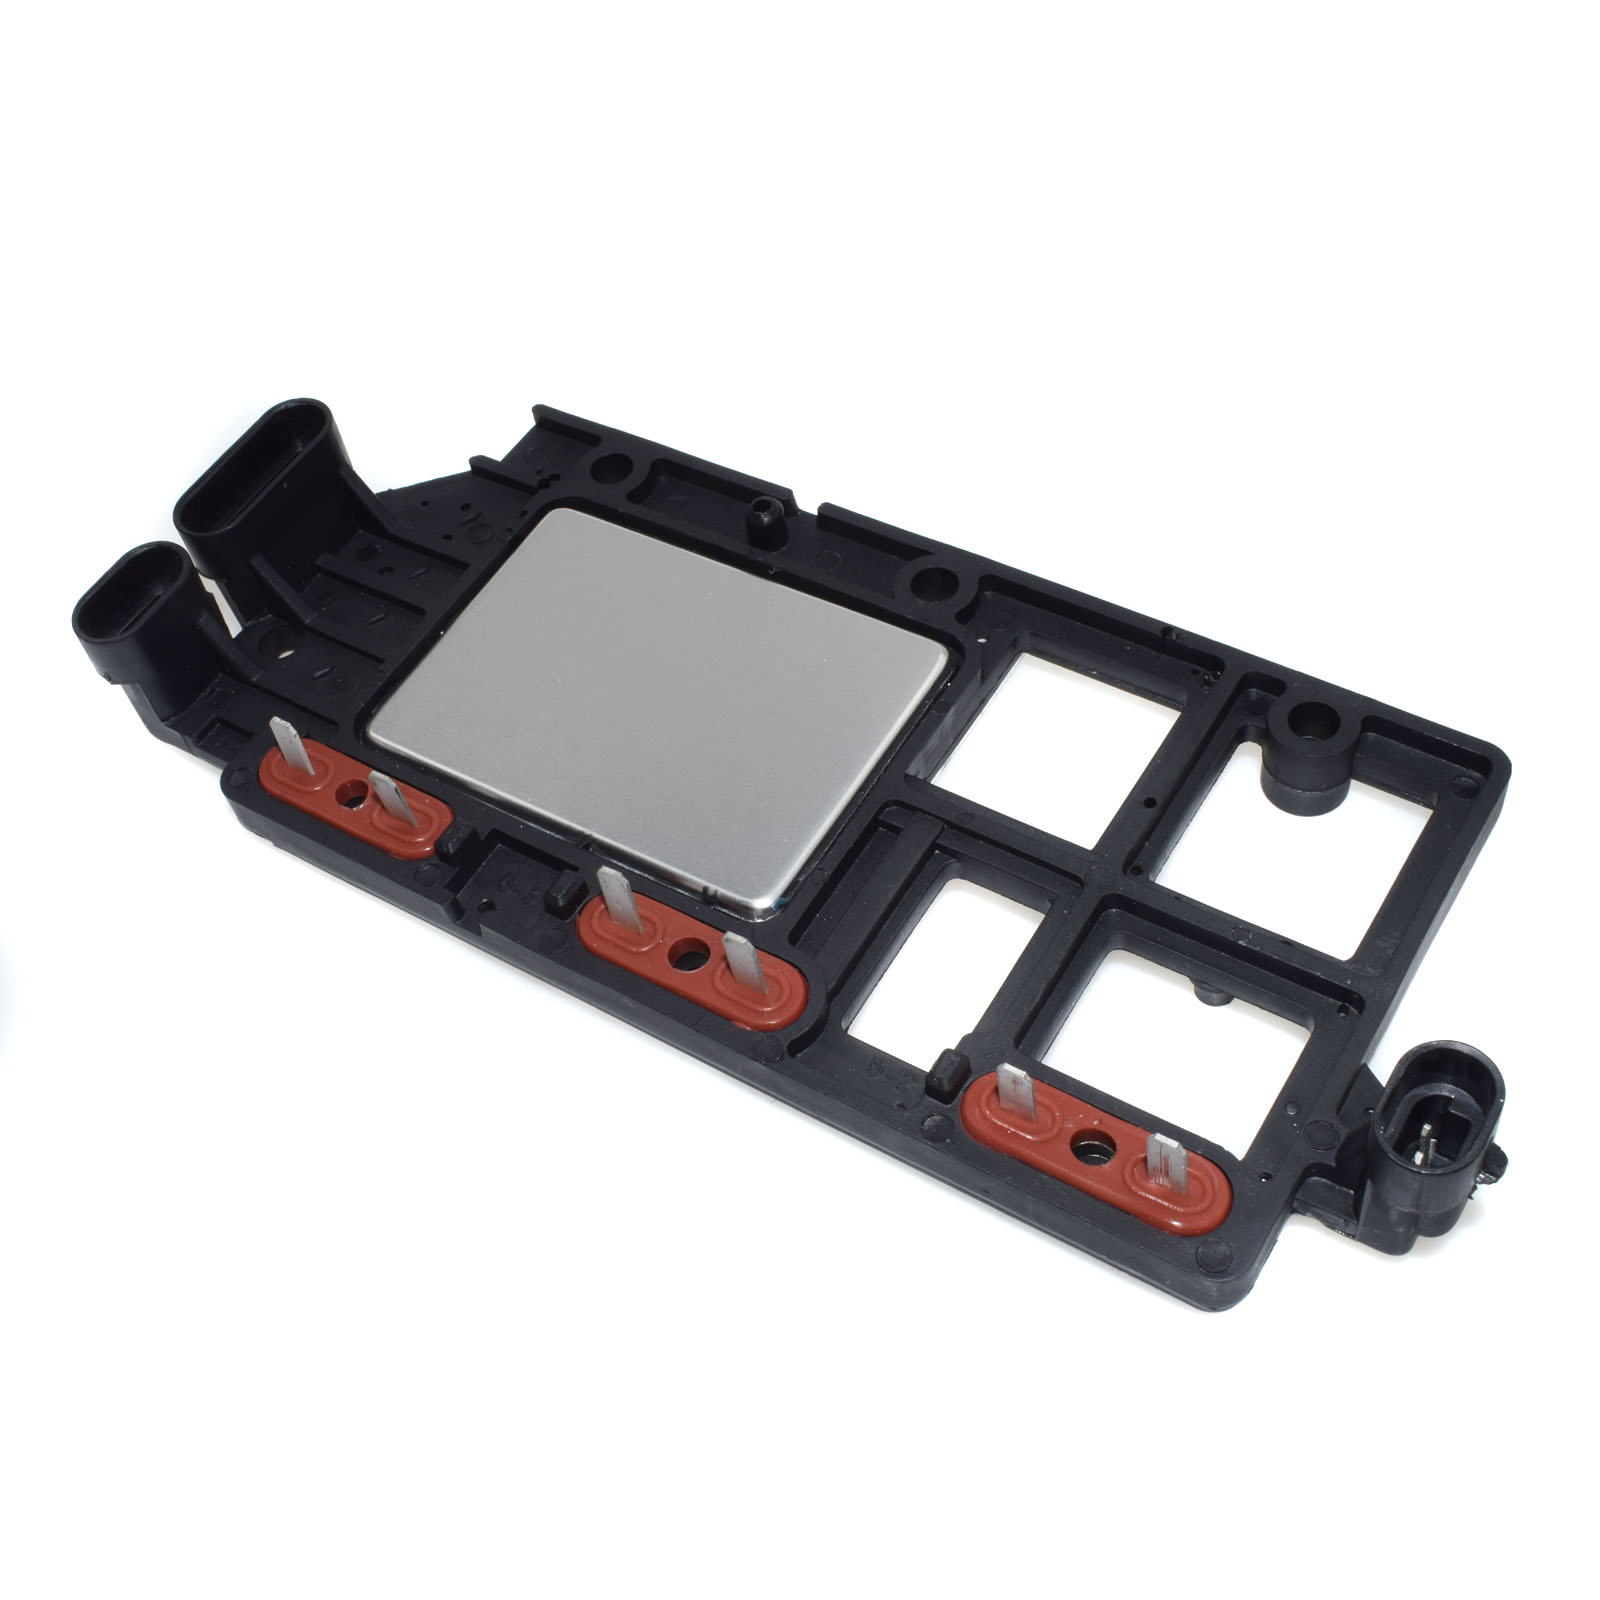 Ignition Control Module for 1994-1995 Chevrolet Cadillac Pontiac Buick